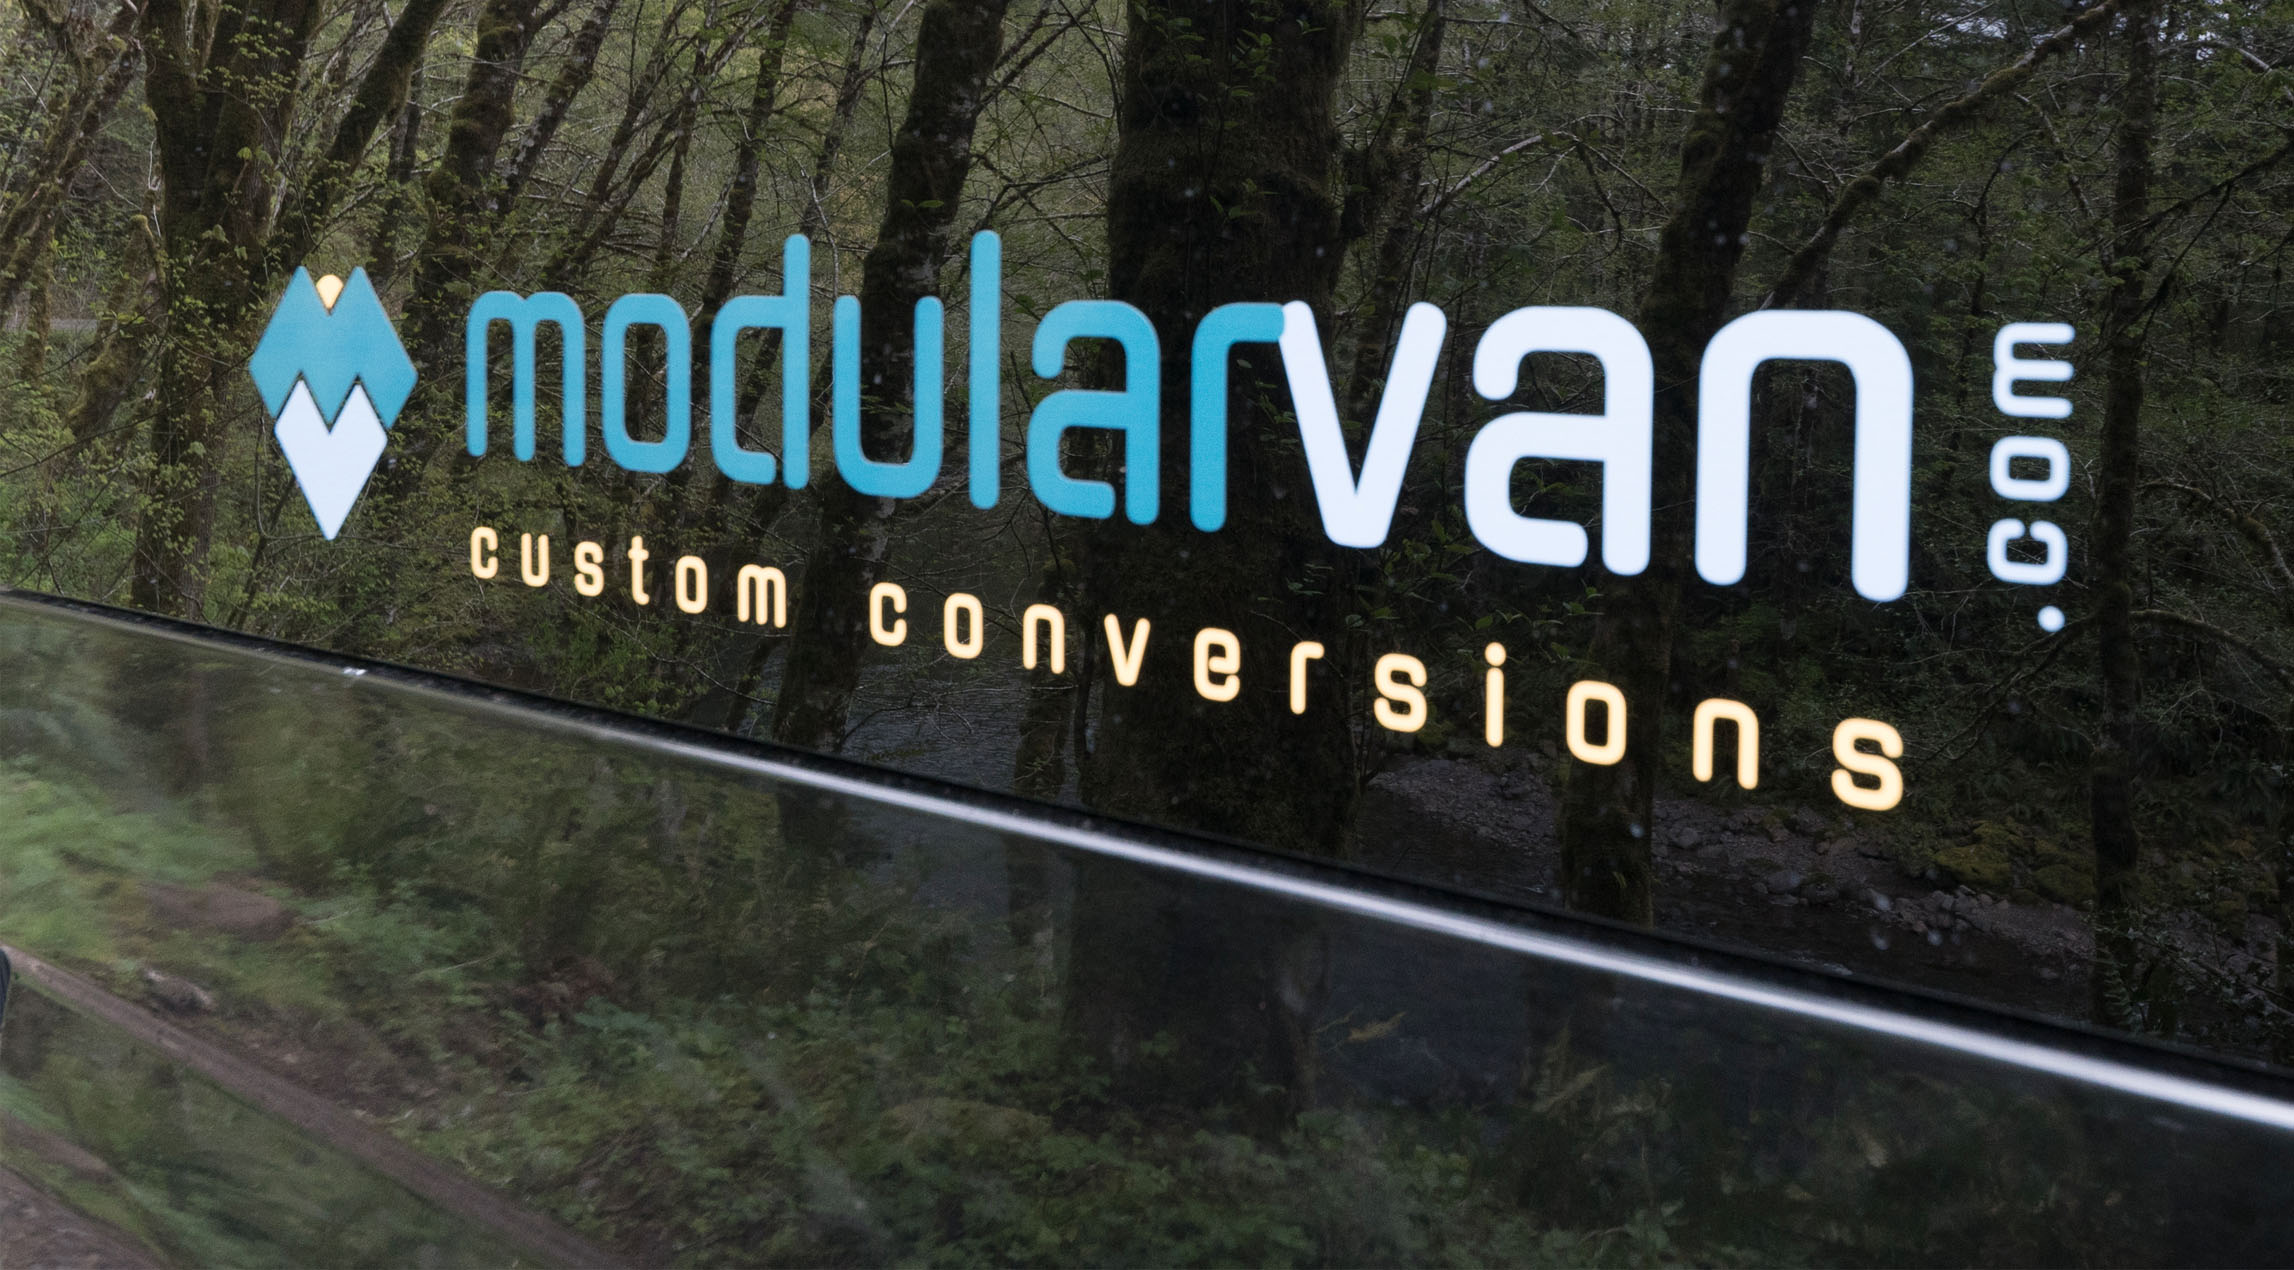 ModularVan.com sprinter van conversions - a CreatID solution